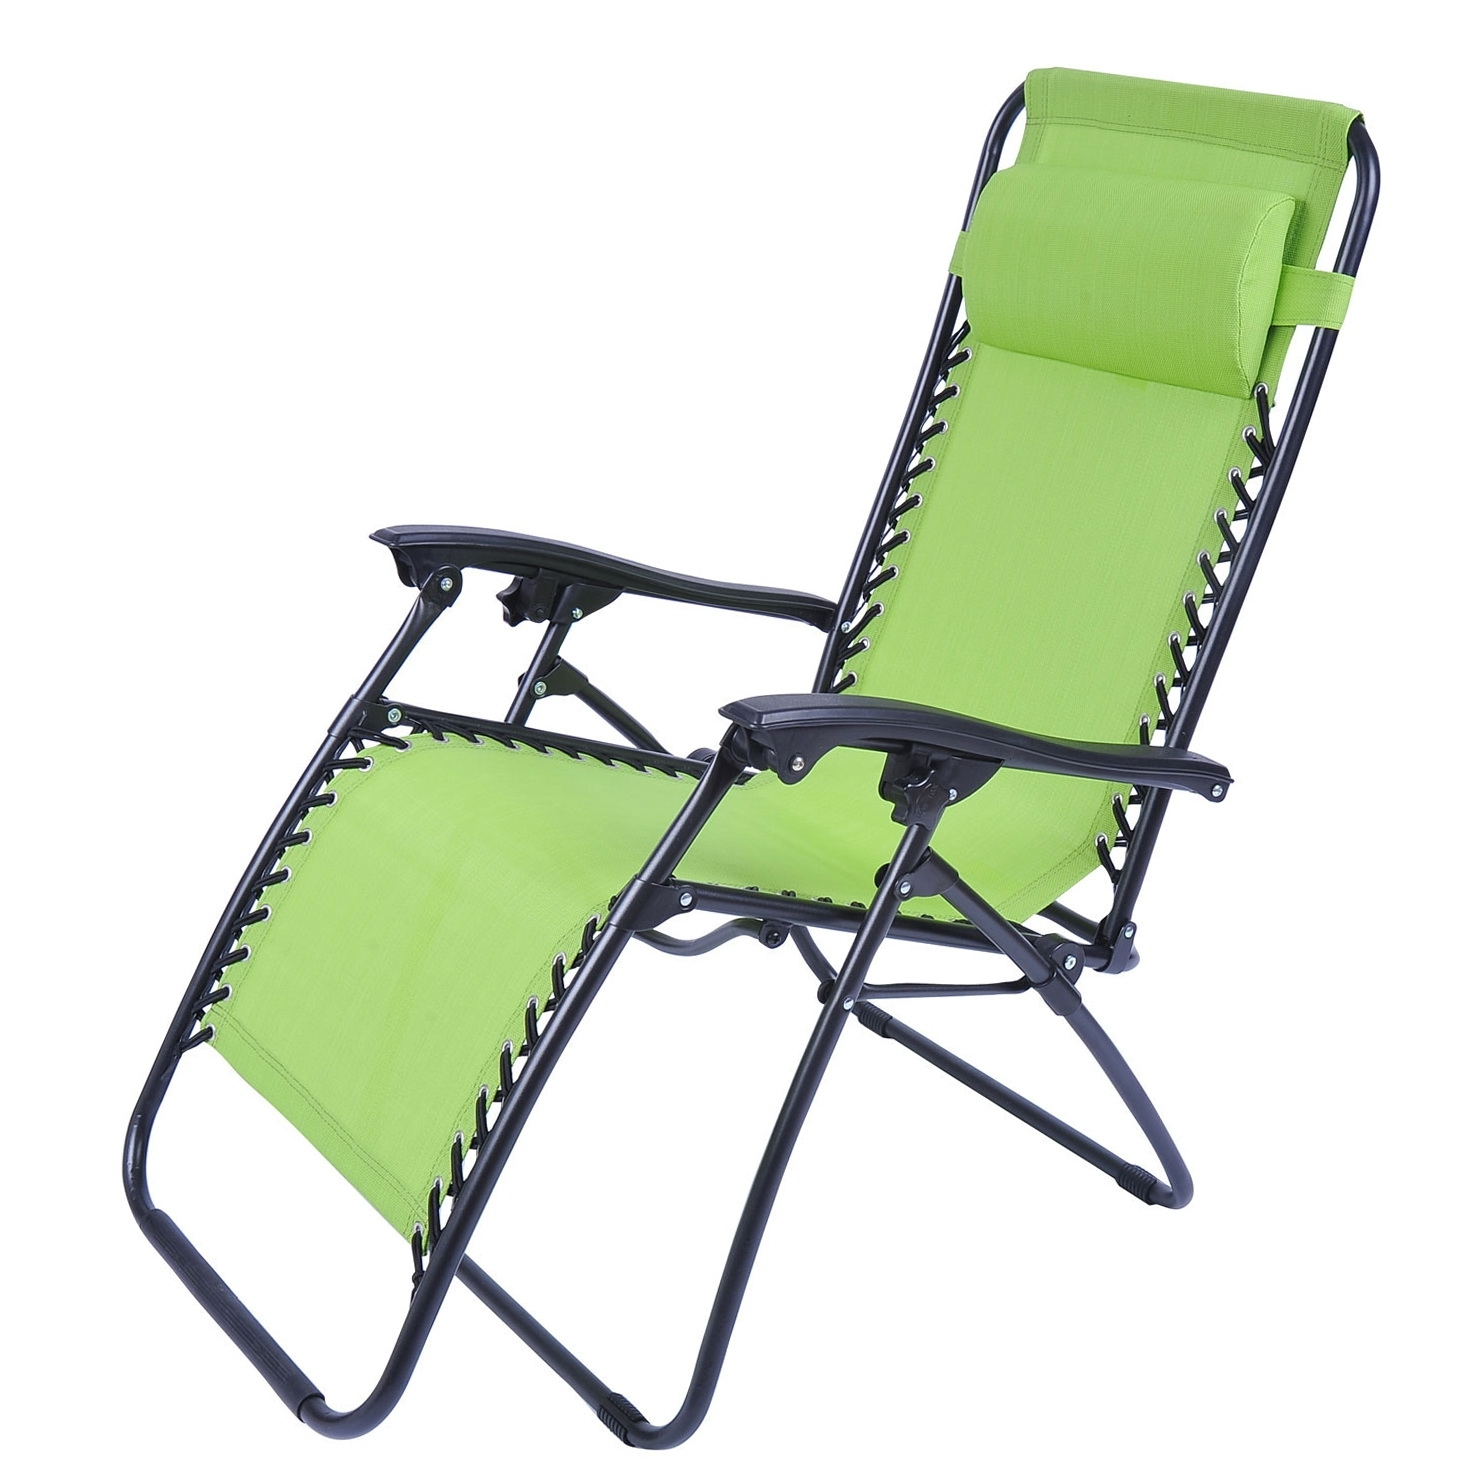 Beach Chaise Lounges Inside Latest Folding Chaise Lounge Chair Patio Outdoor Pool Beach Lawn Recliner (View 9 of 15)